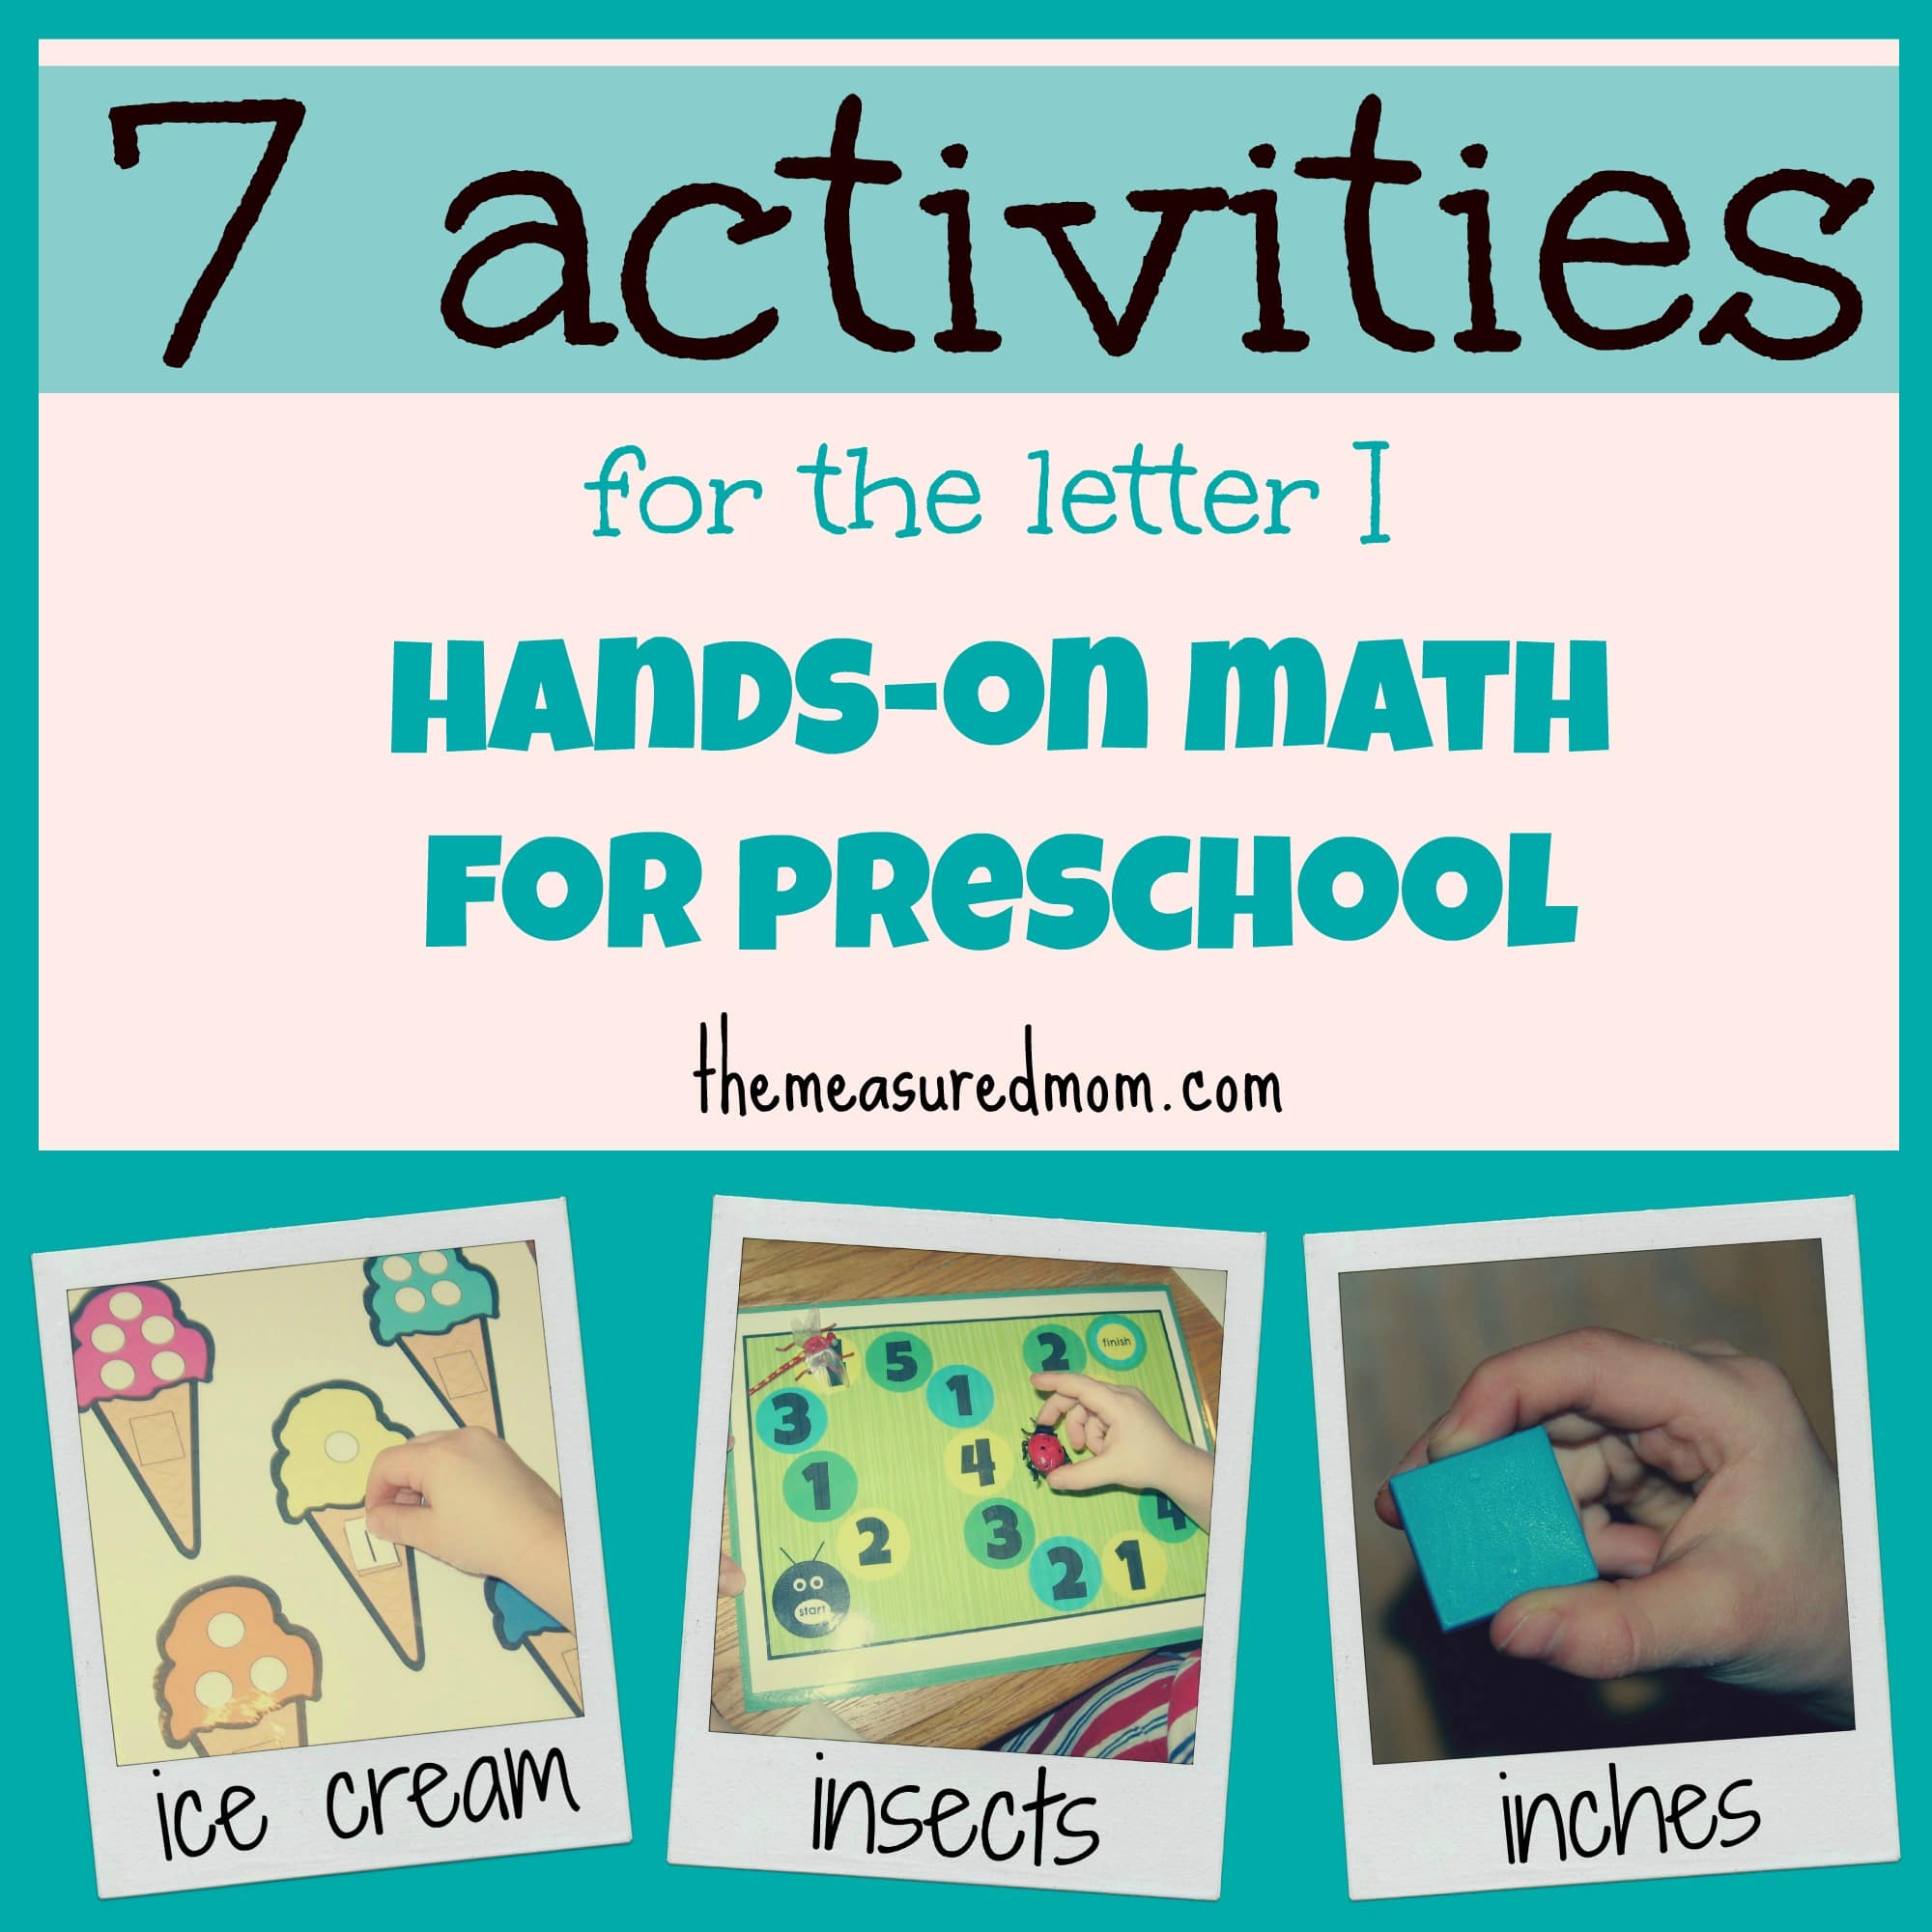 We've been doing a lot of hands-on math for preschool at home. Since ...